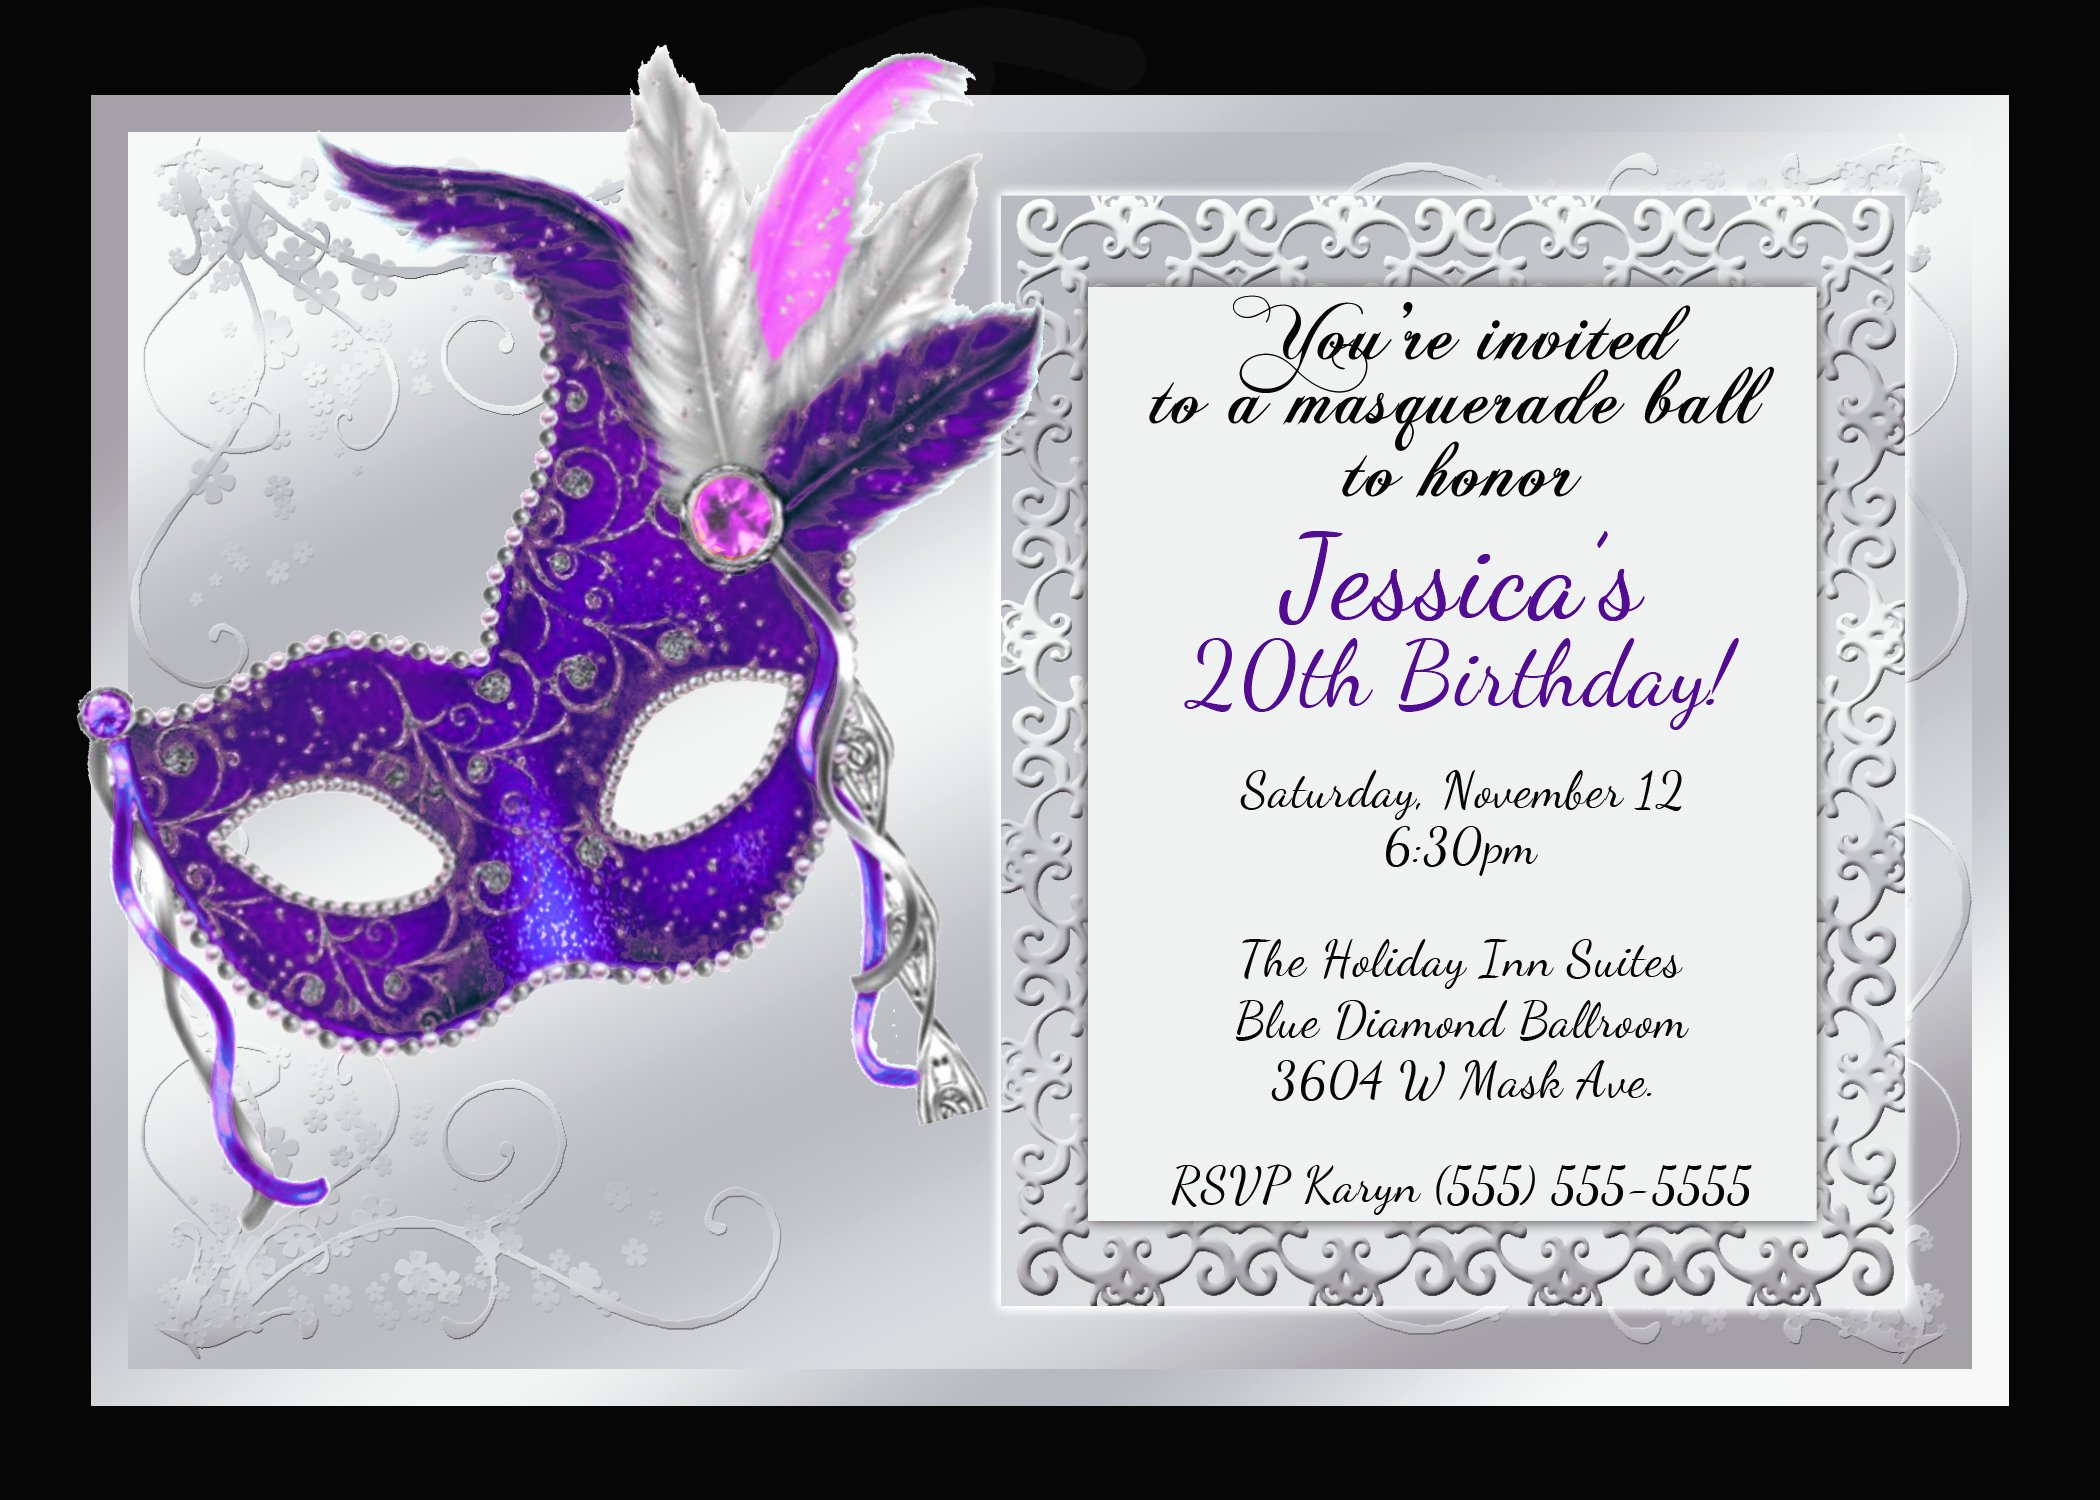 Masquerade Invitations Template Free Fresh Mardi Gras and Masquerade Birthday Invitations